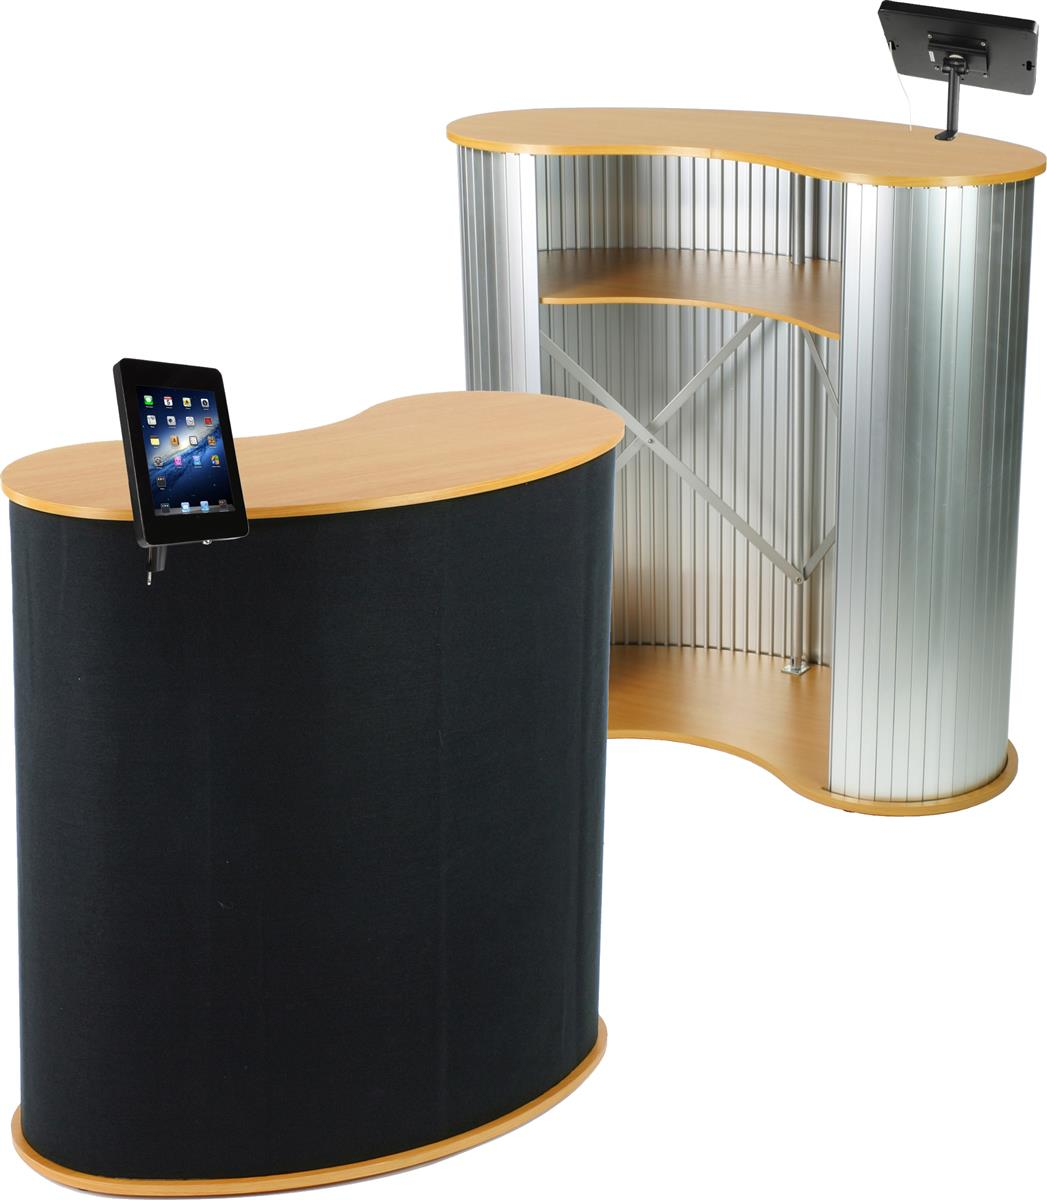 Exhibition Booth Counter : Portable trade show counter with ipad display exhibit booth